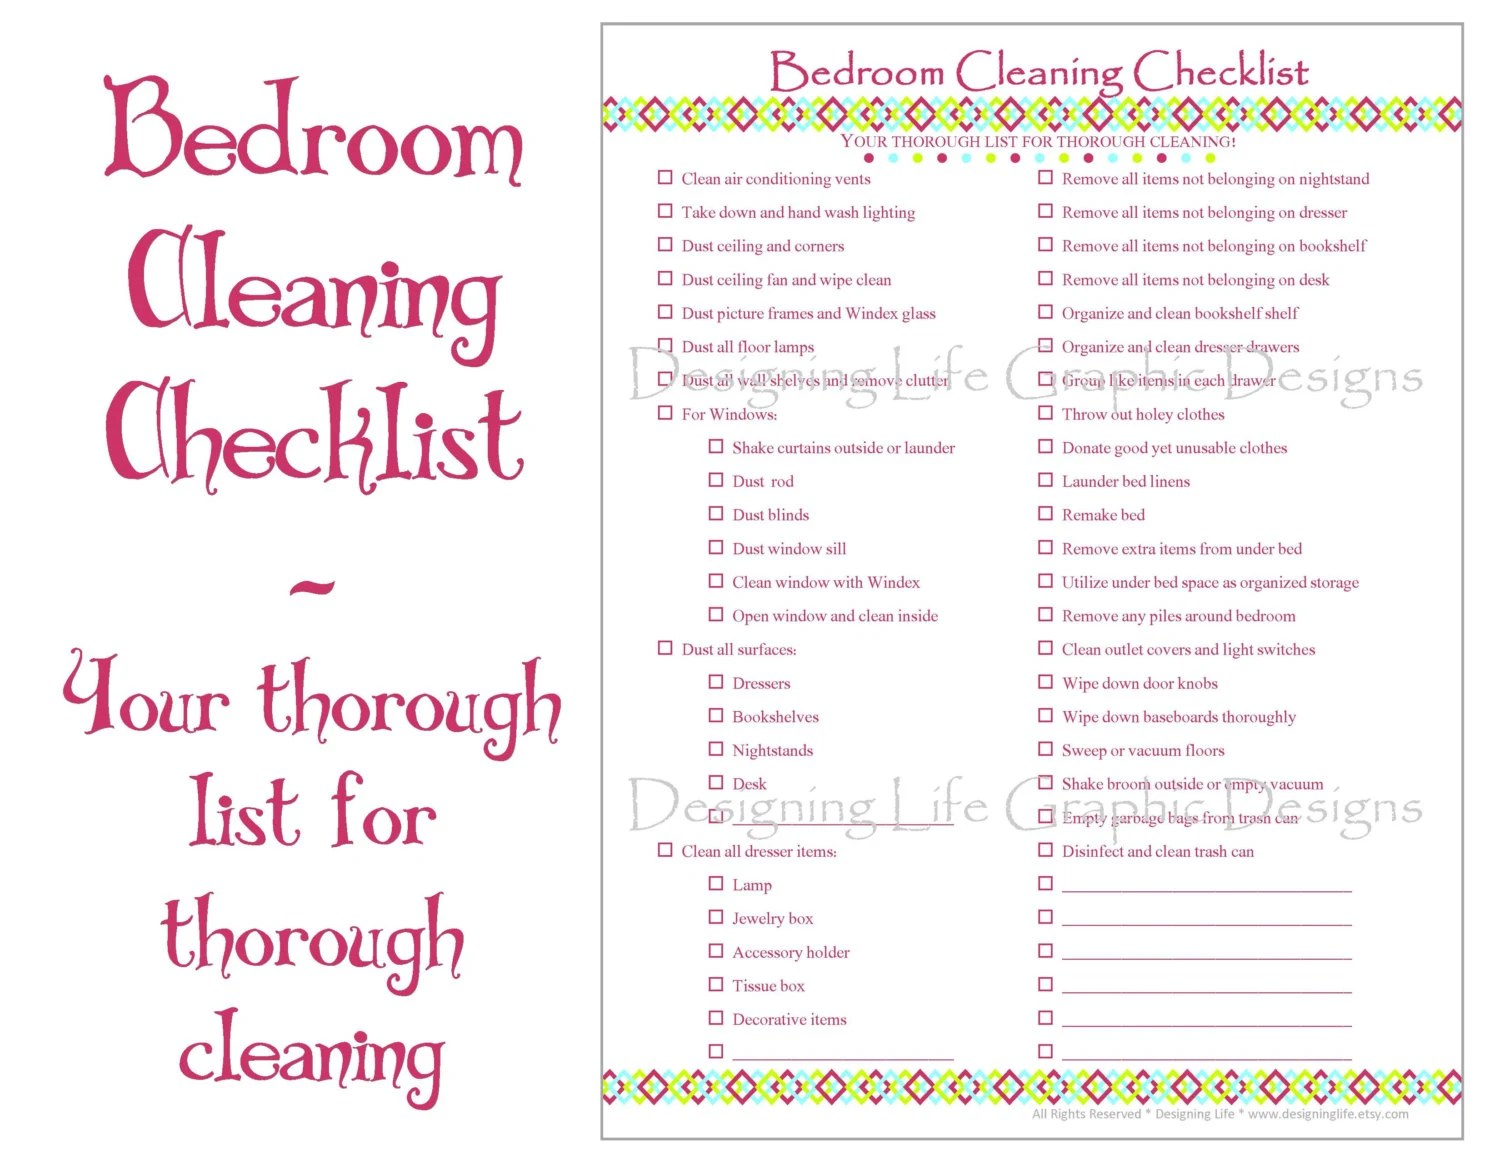 Bedroom Cleaning Checklist Printable By Designinglife